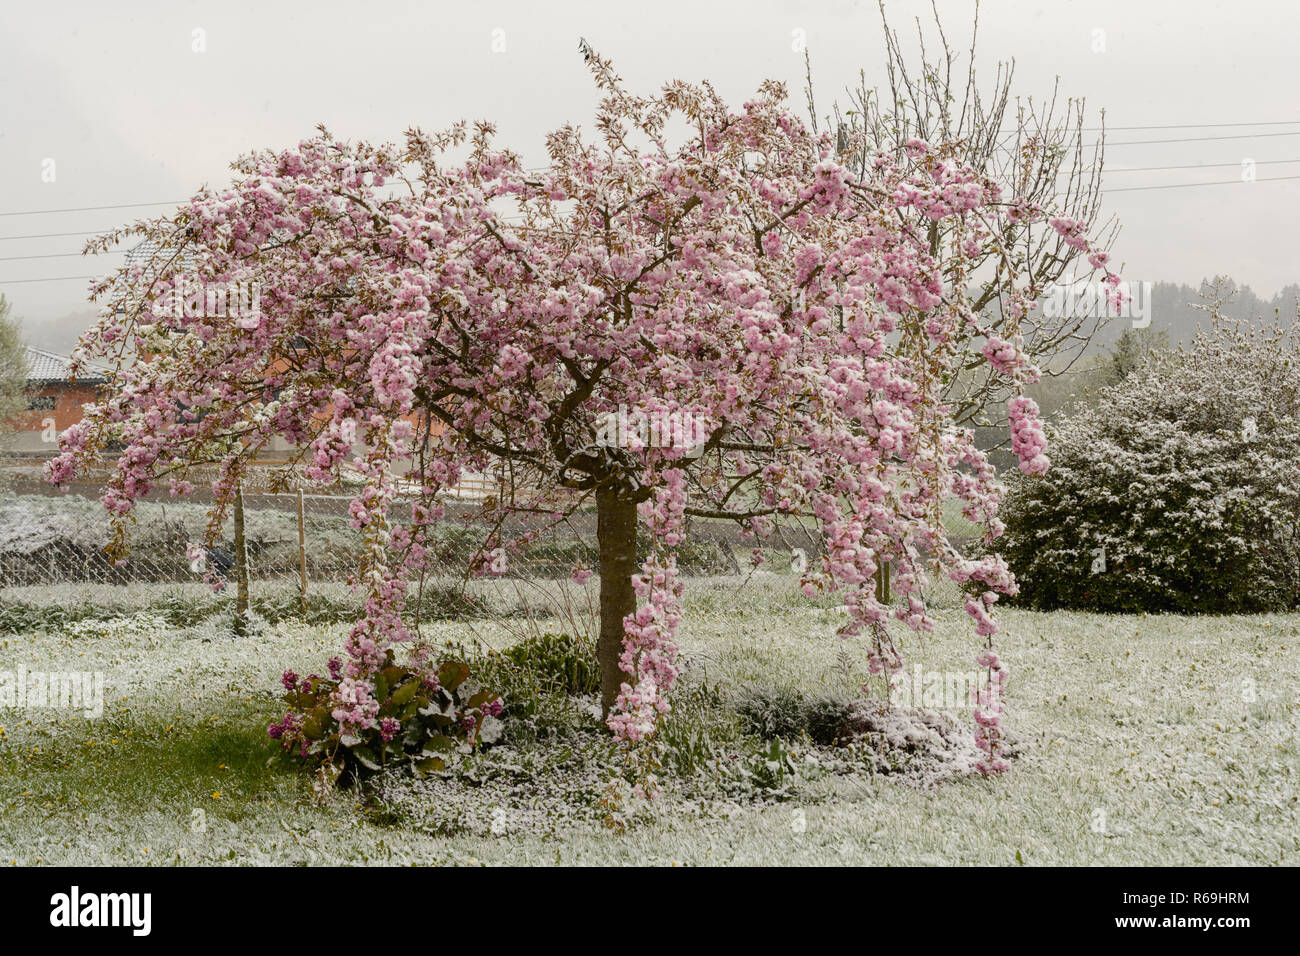 Japanese Cherry In Full Bloom And Also Dusted With Snow - Stock Image